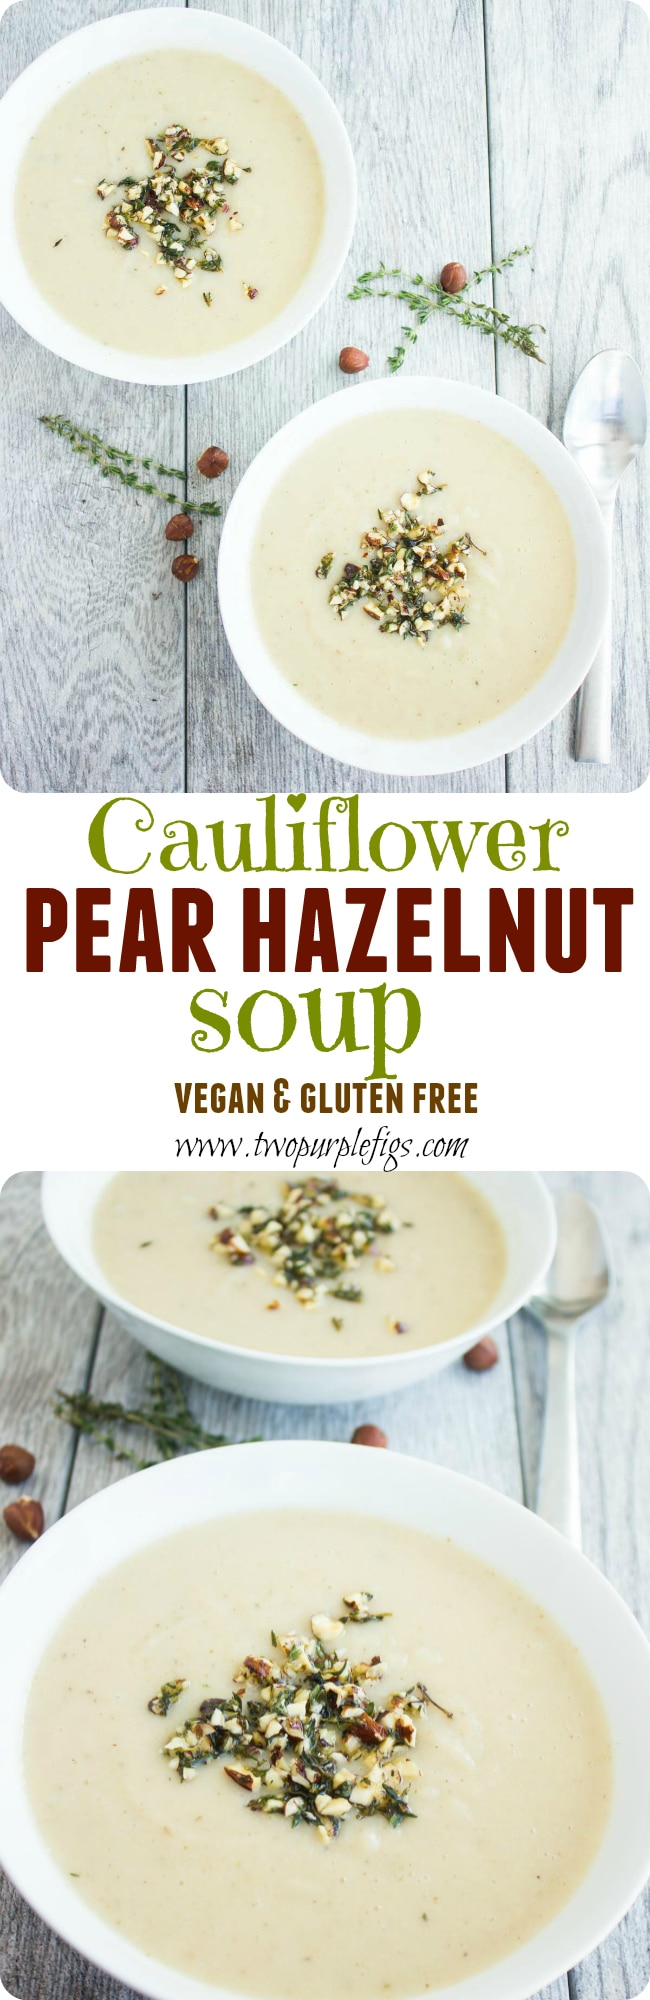 Cauliflower Hazelnut Pear Soup - smooth, rich, satisfying and the perfect comforting dish to cheer you up on a cold rainy day. Serve this creamy vegan soup with a crunchy Thyme & Hazelnut topping! The perfect starter for a fall-themed menu. | www.twopurplefigs.com|  #easy, #healthy, #creamy, #vegan,